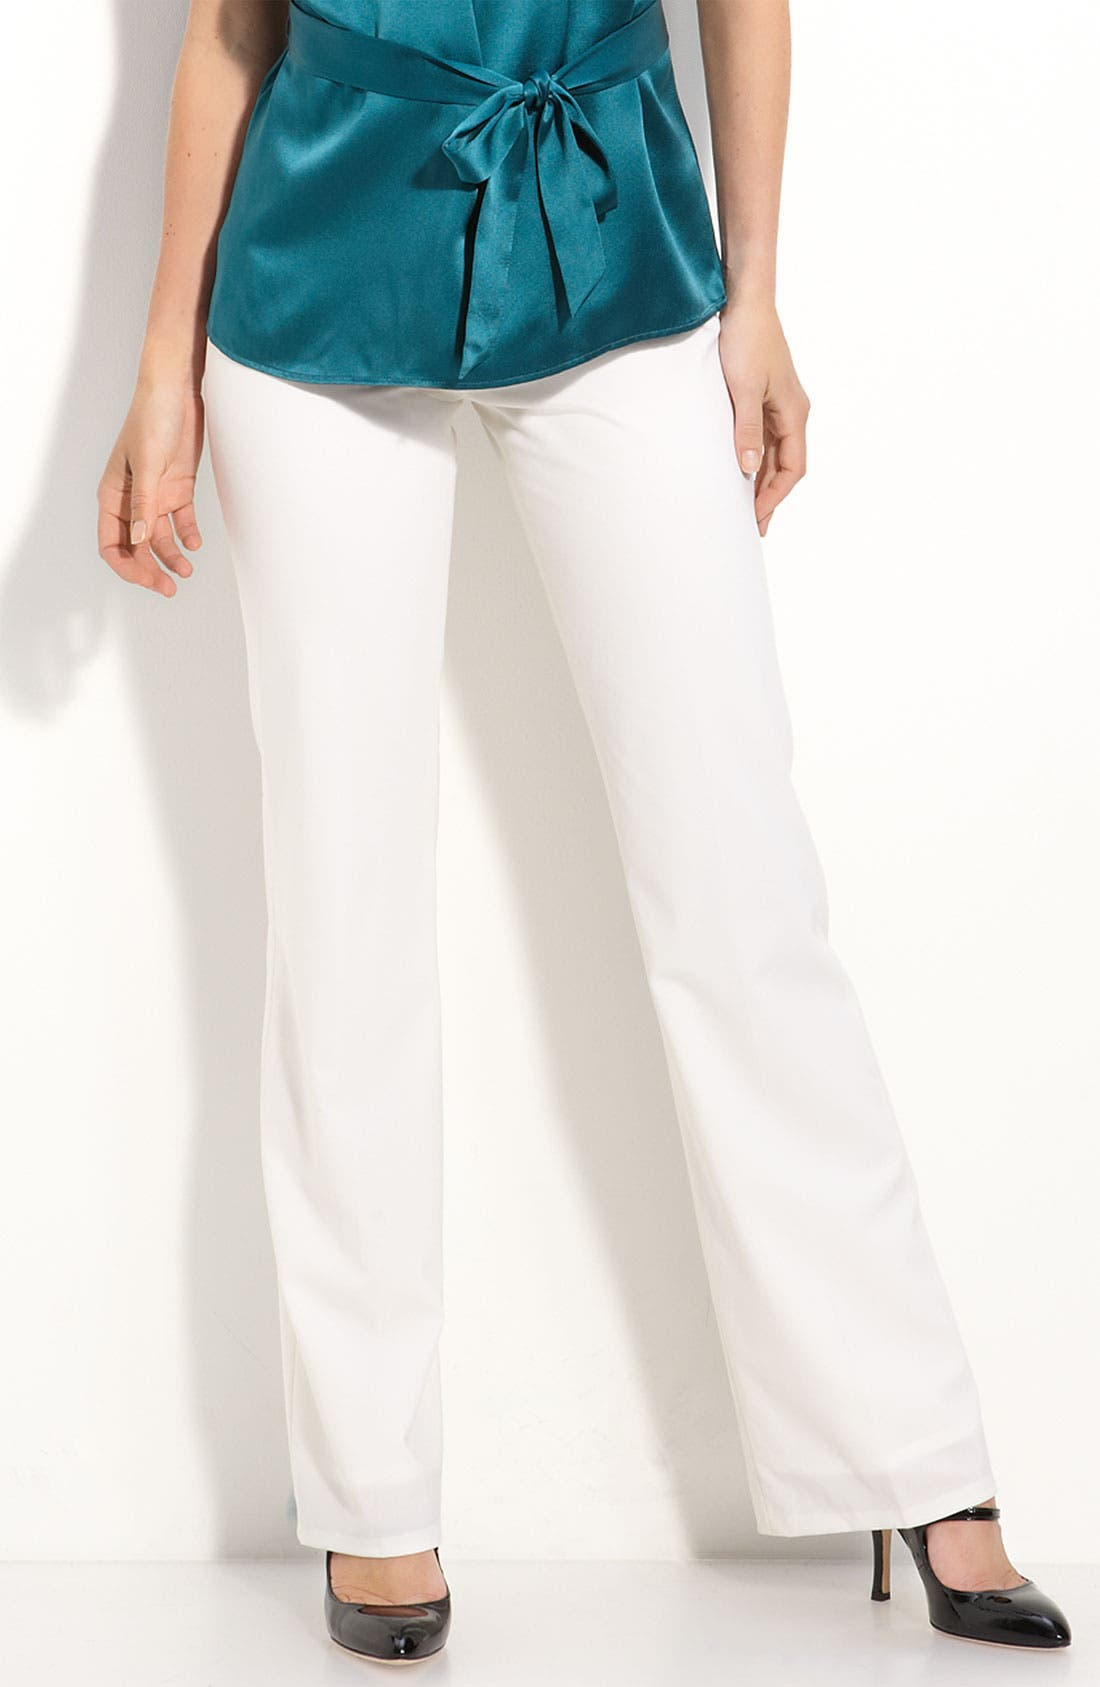 Alternate Image 1 Selected - Nordstrom Collection Cashmere Sweater and Lafayette Trousers